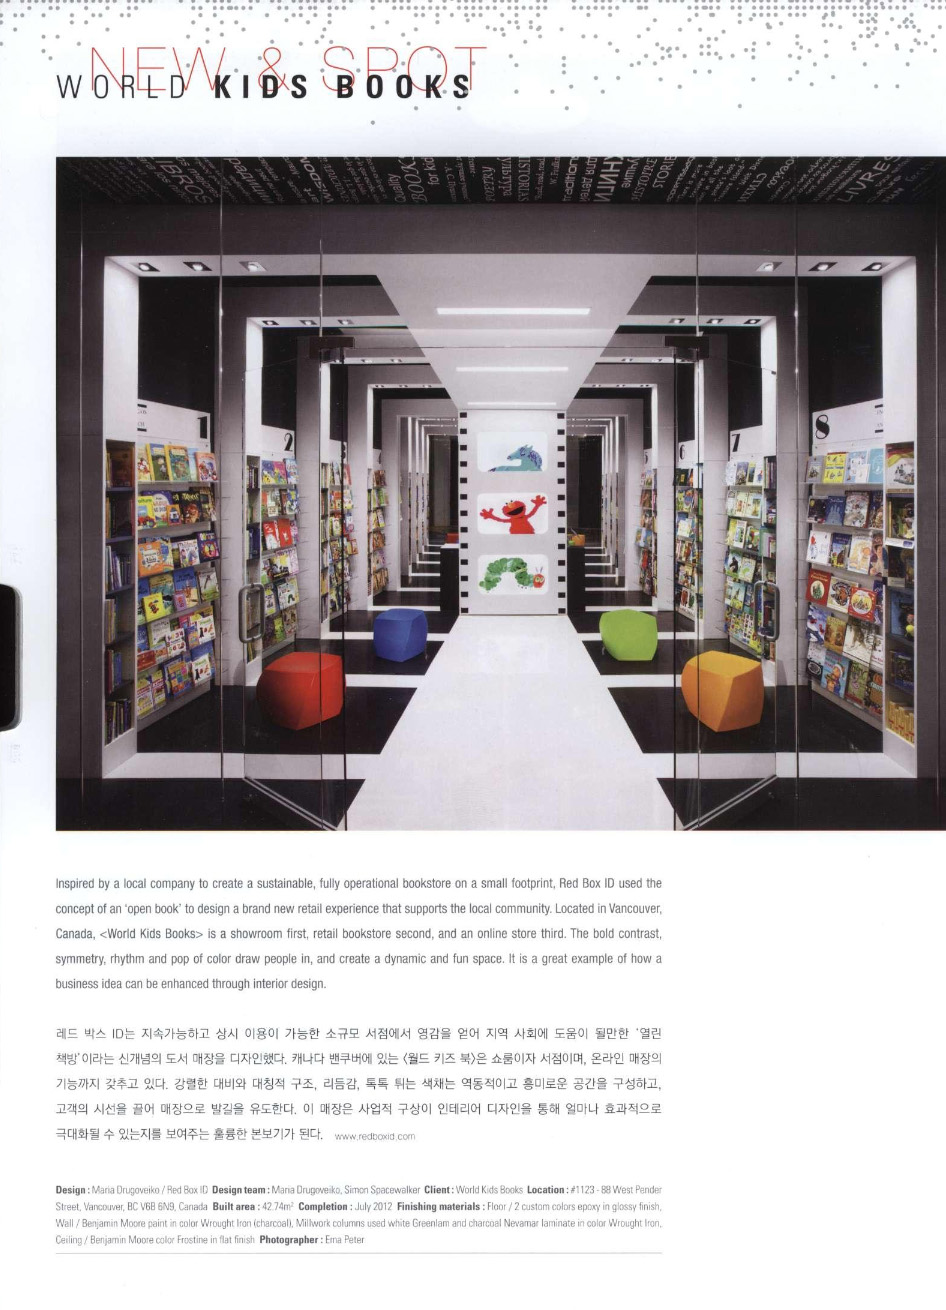 International Magazine of Space Design | Red Box ID | Vancouver